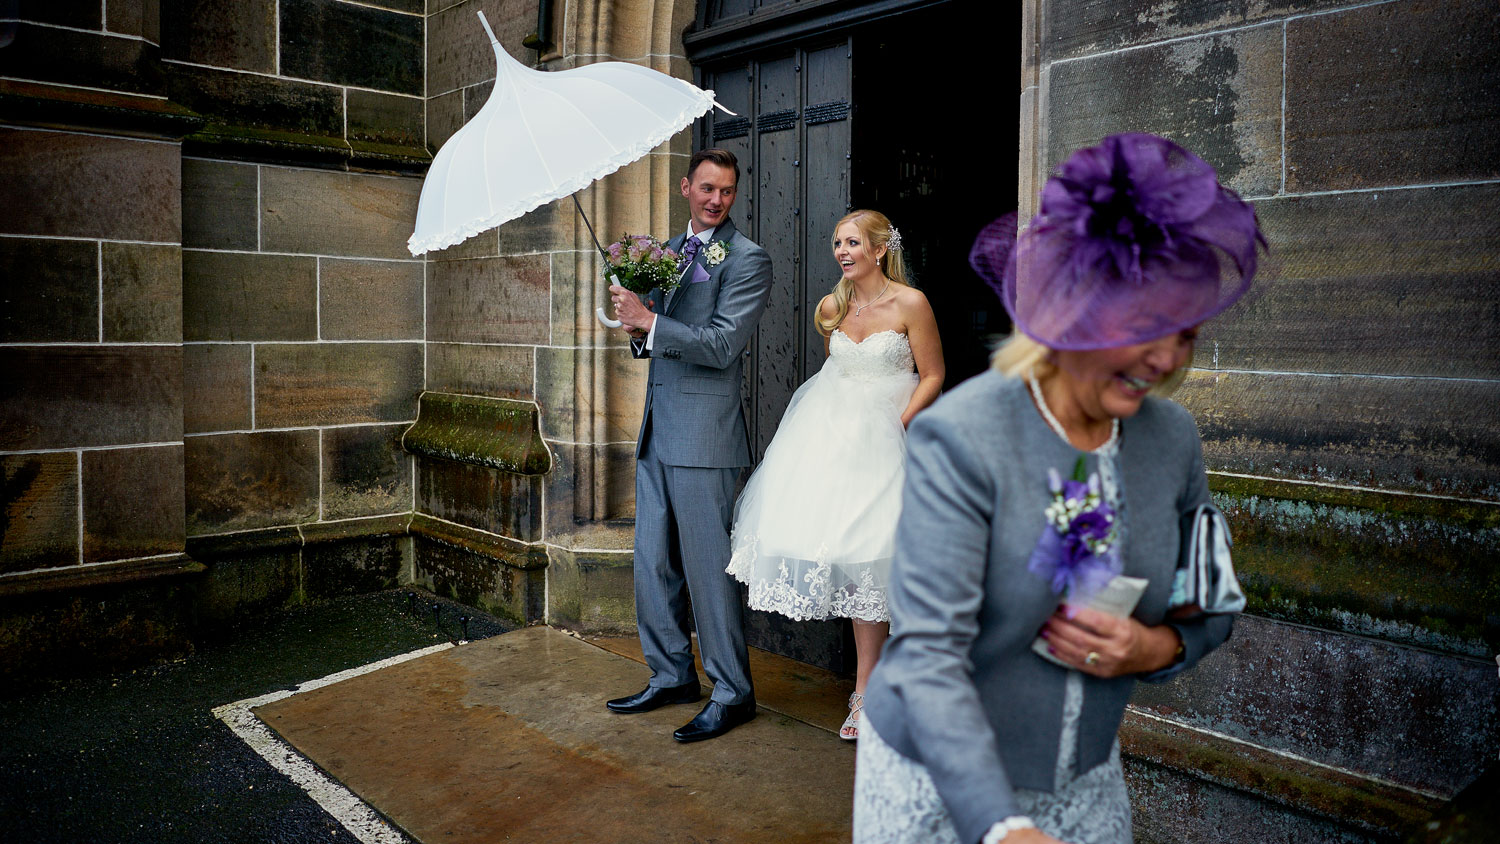 Bride, Groom, Mother of the Bride and an umbrella